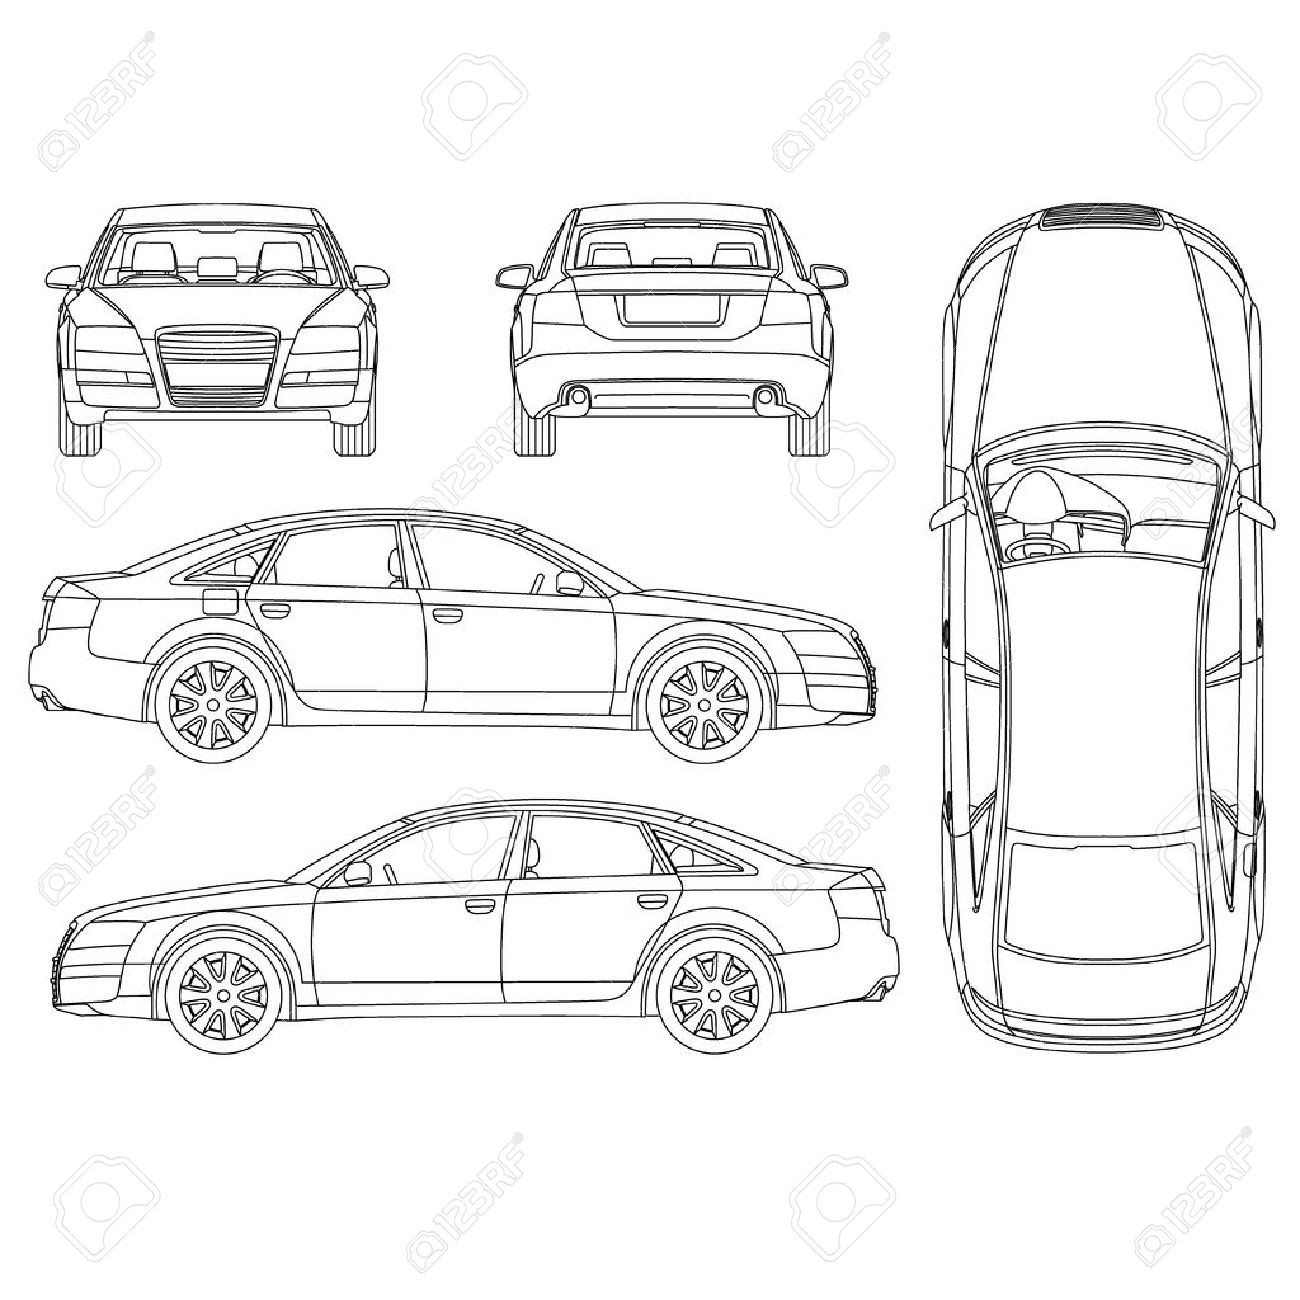 Car All View, Top, Side, Back, Front Royalty Free Cliparts, Vectors ...